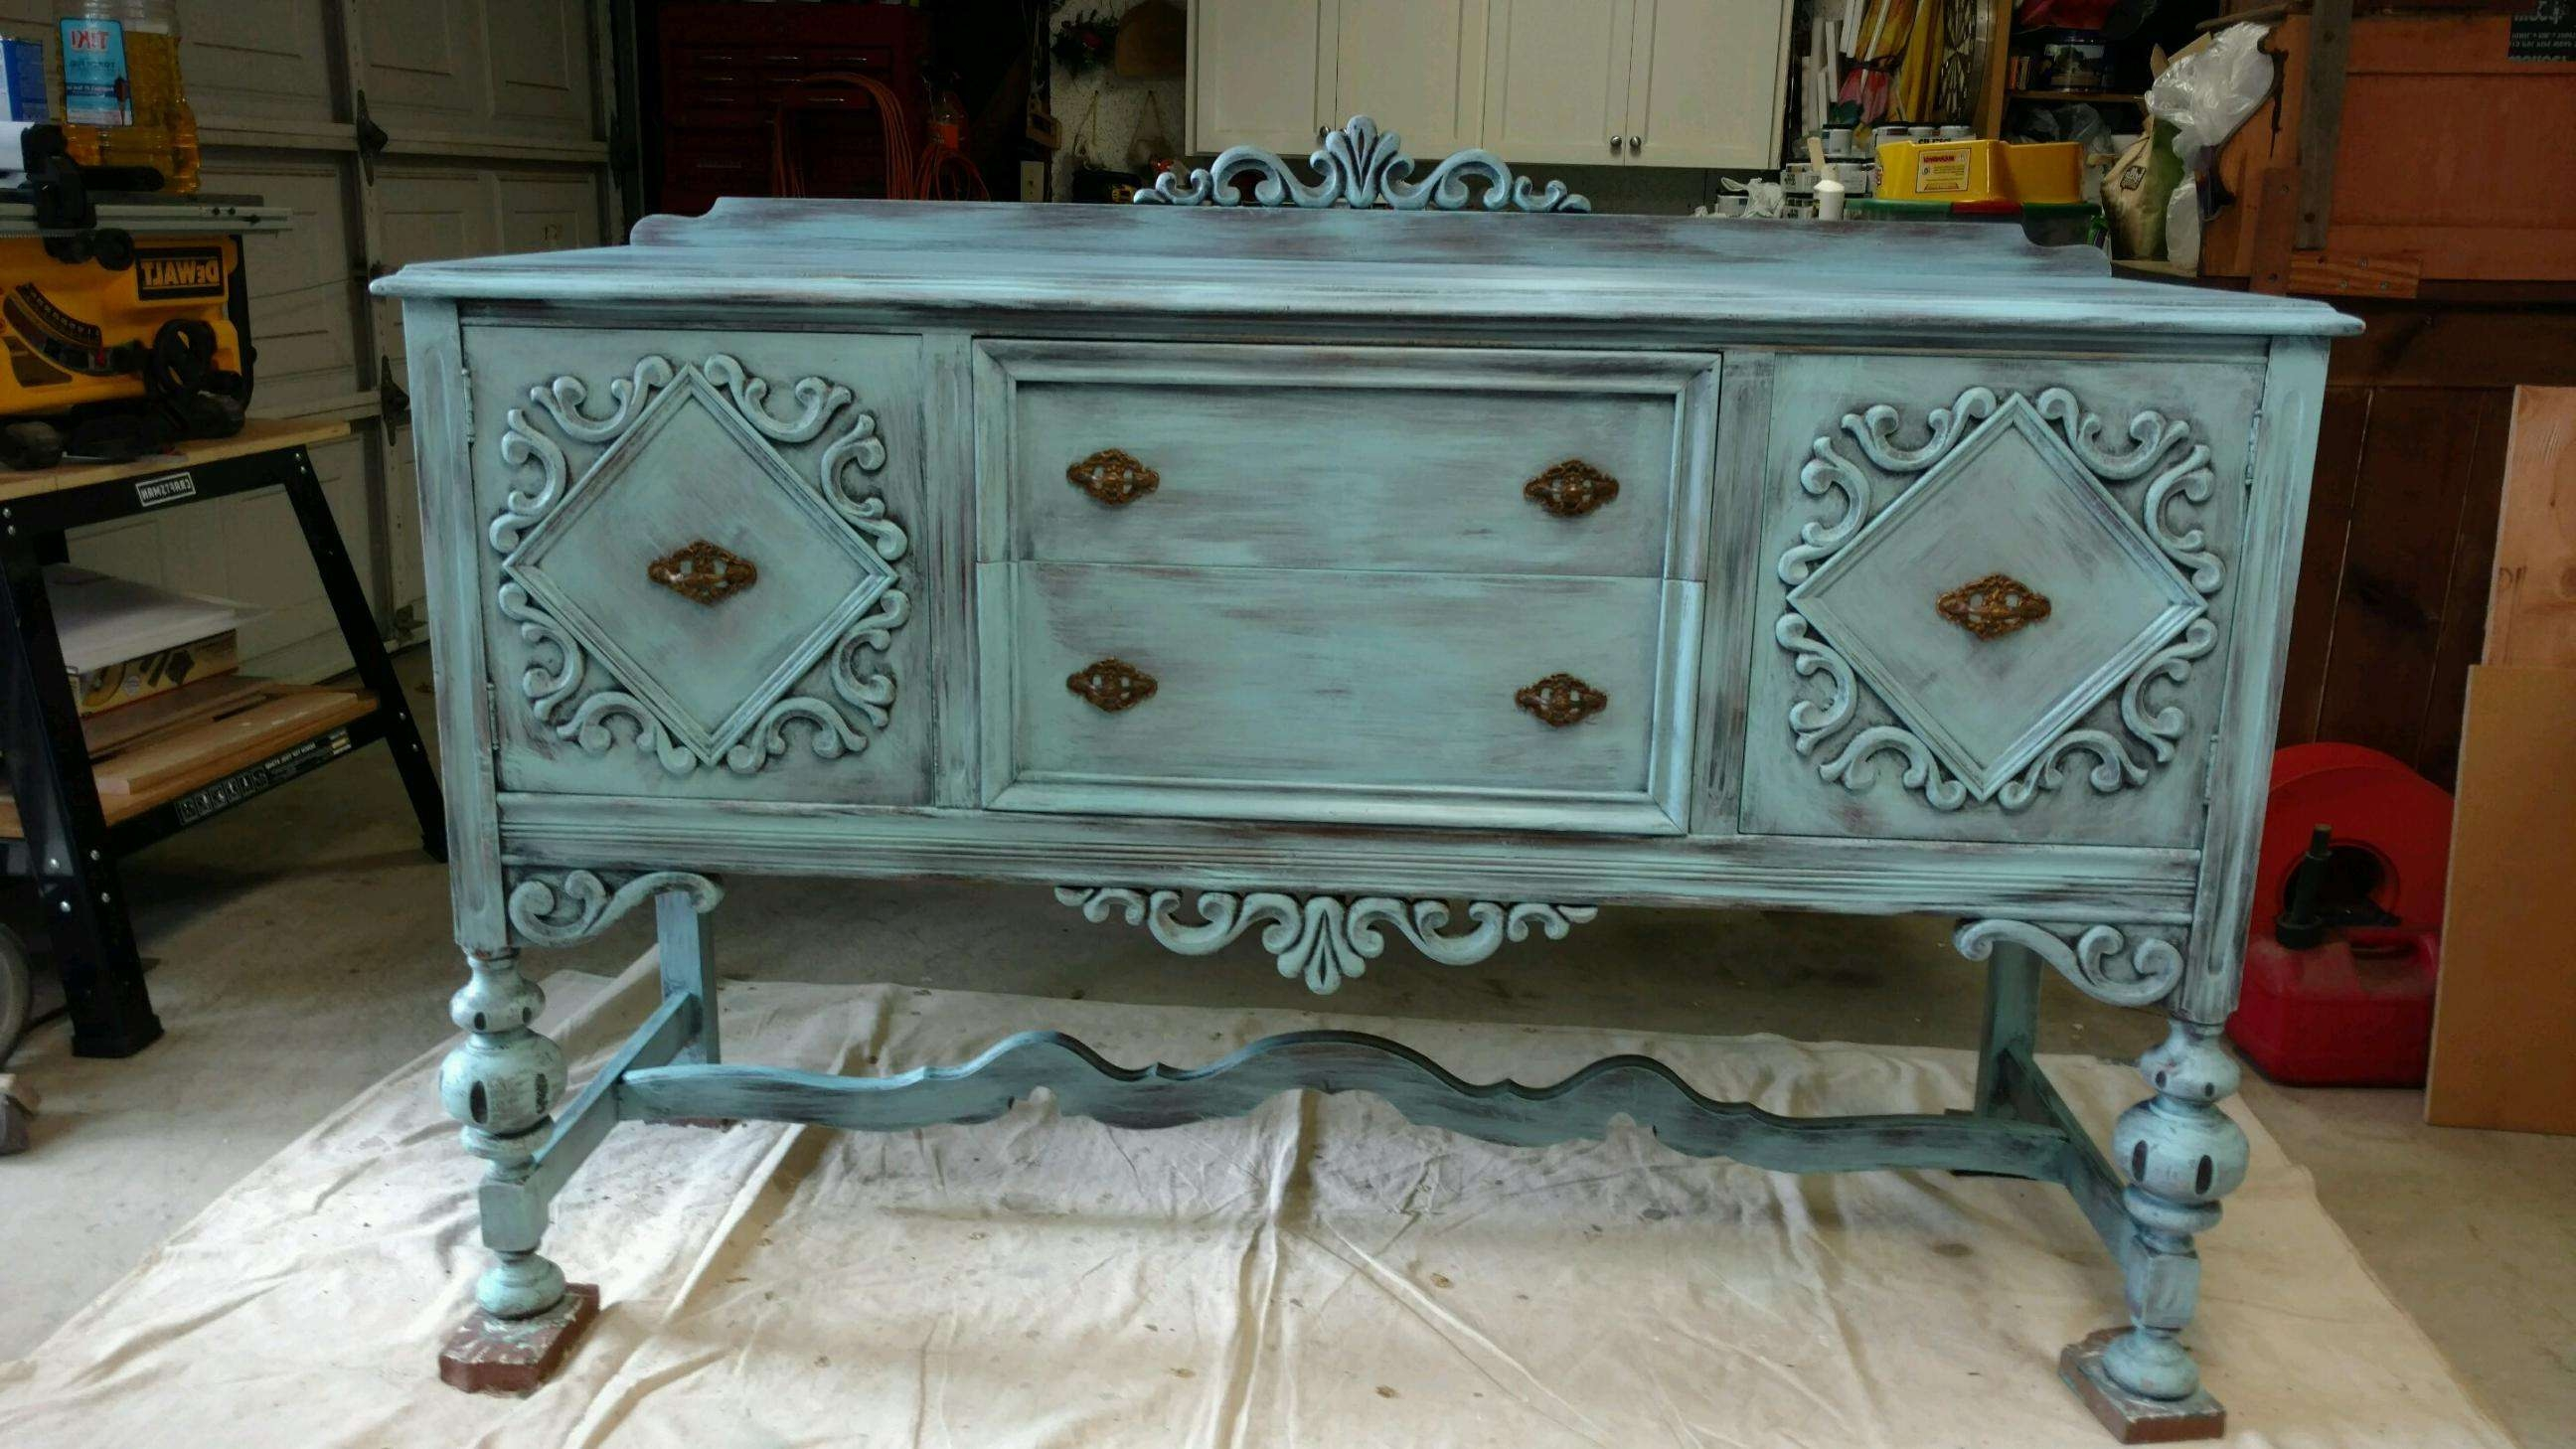 Antique Sideboard Buffet Intended For Antique Buffet Sideboards (View 7 of 20)